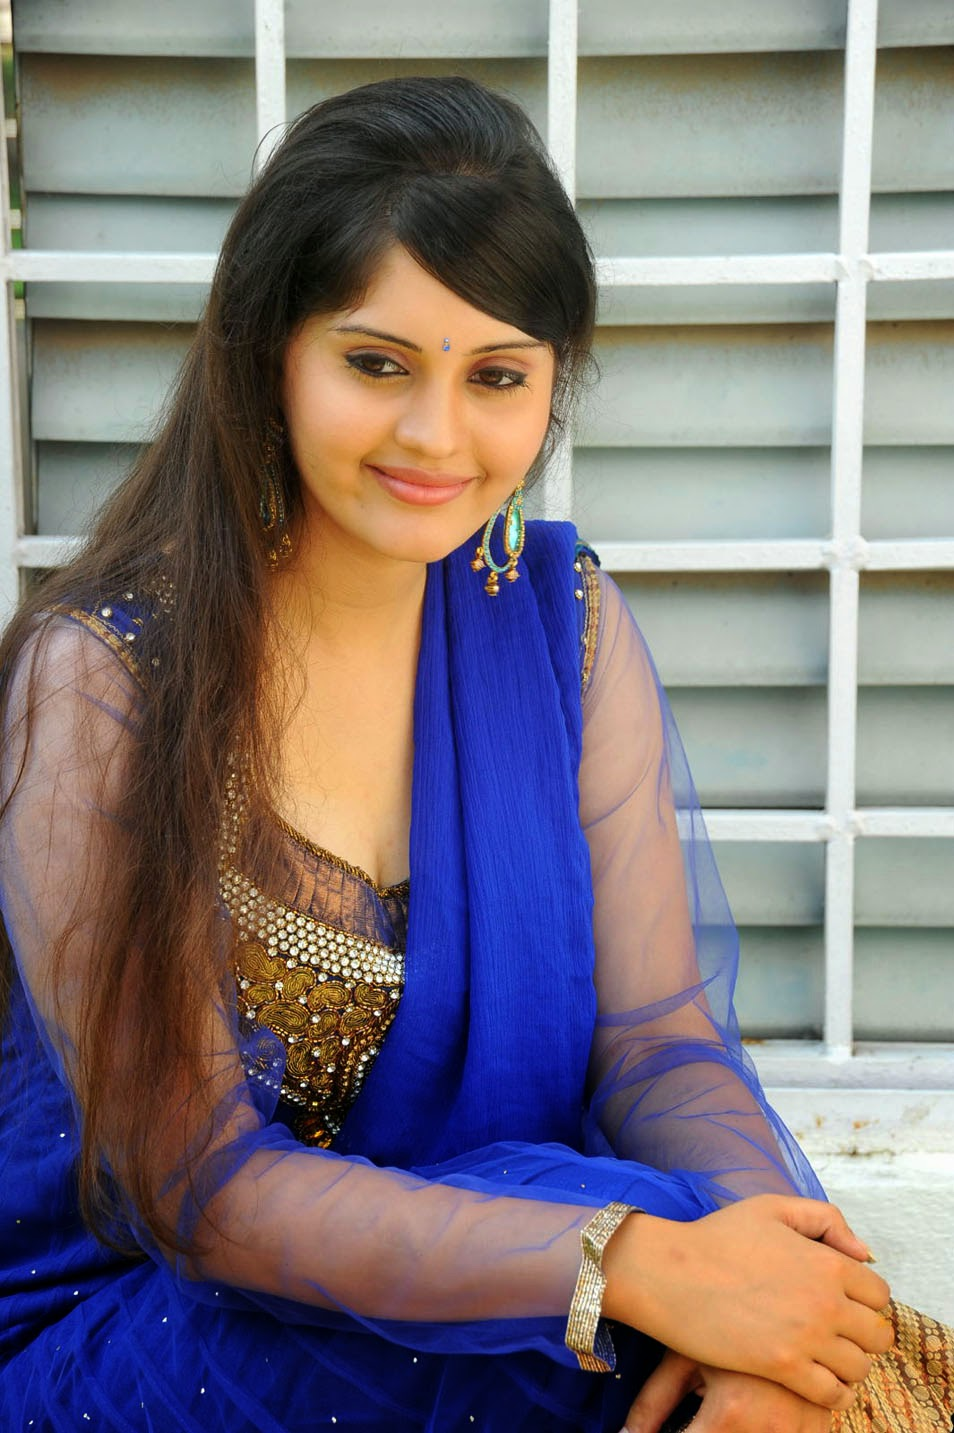 cute desi actress pictures: ivan veramathiri surabhi in blue